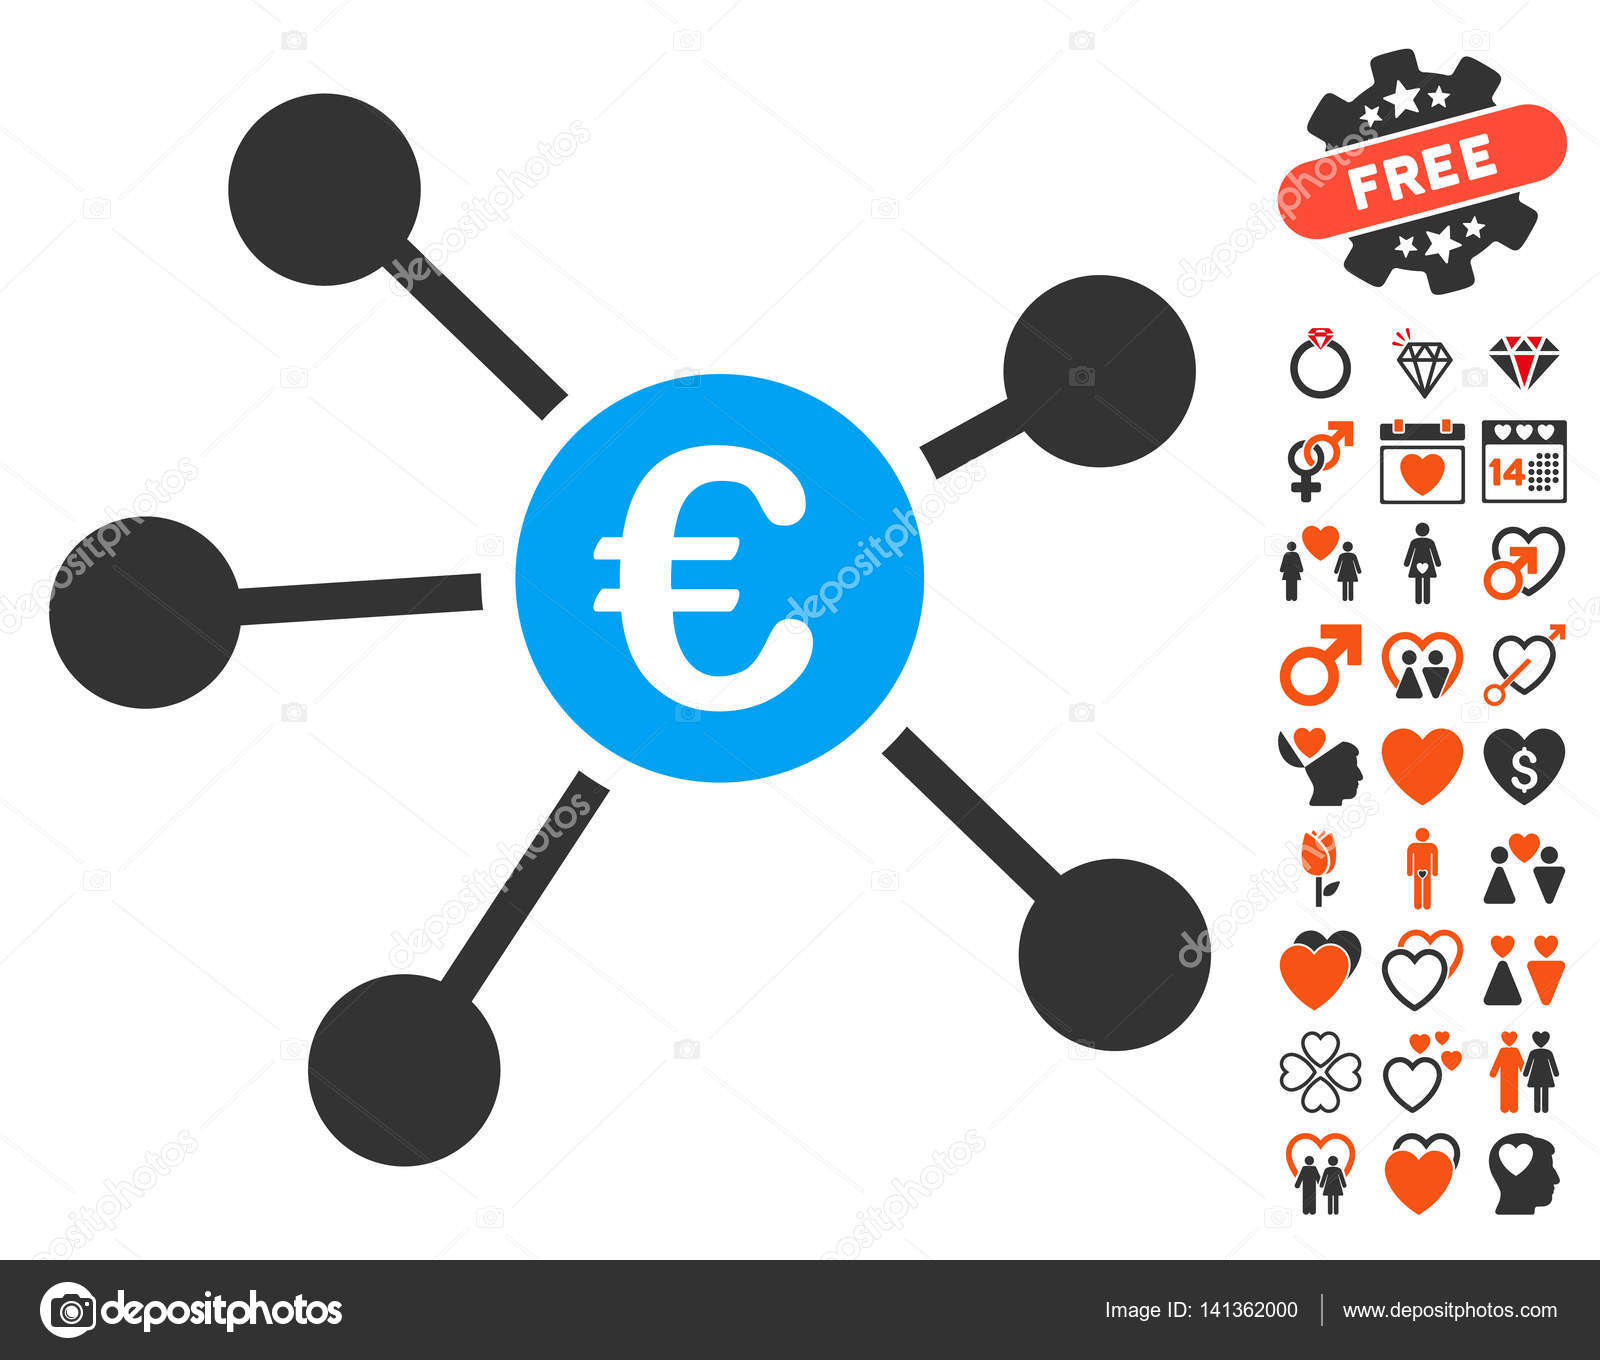 Euro links icon with lovely bonus stock vector ahasoft 141362000 euro links icon with bonus valentine pictures vector illustration style is flat iconic symbols for web design app user interfaces vector by ahasoft biocorpaavc Gallery